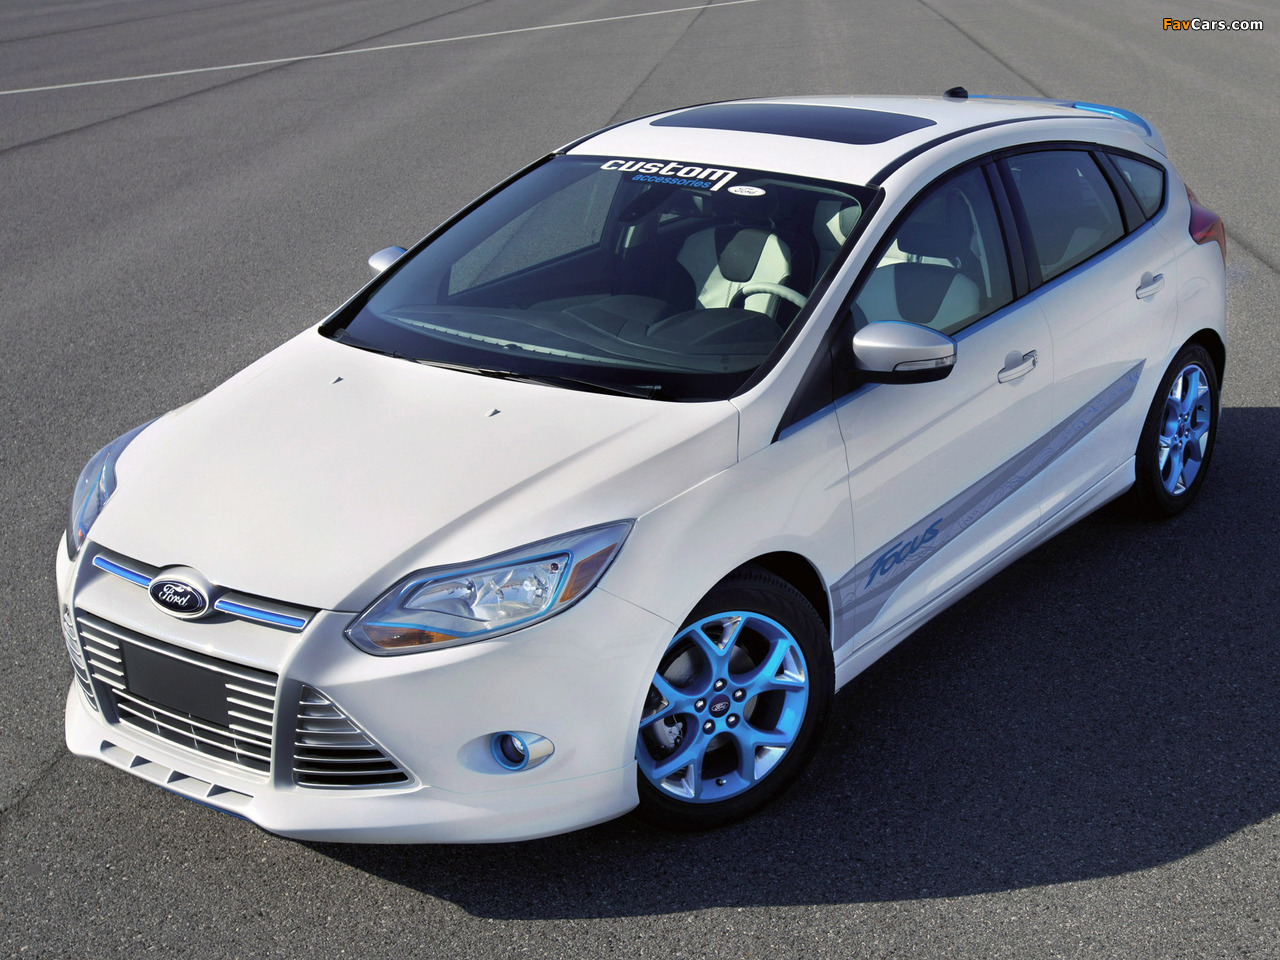 Ford Focus Vehicle Personalization Concept 2010 pictures (1280 x 960)